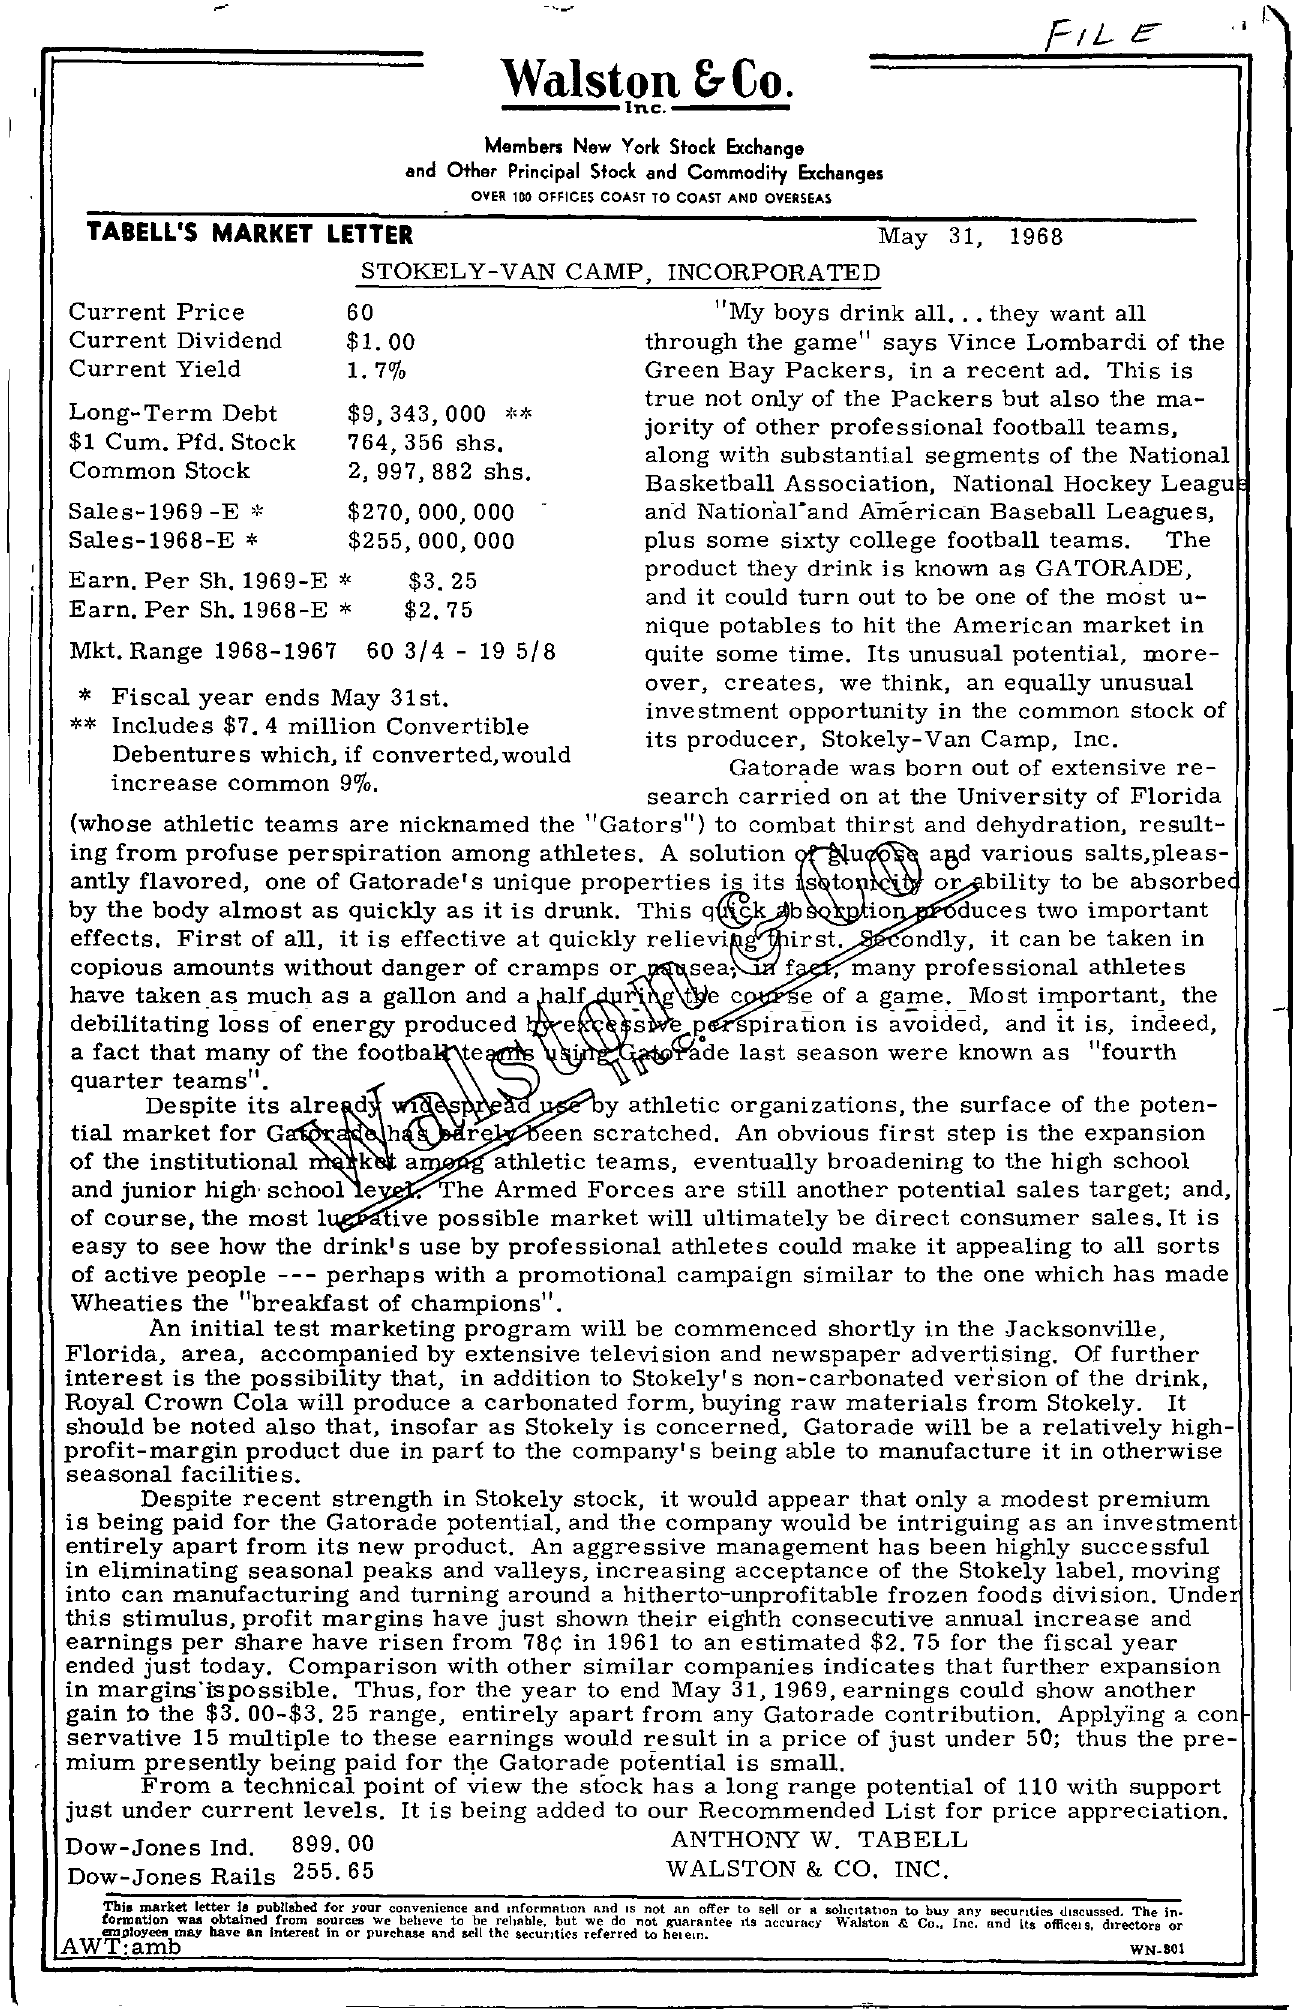 Tabell's Market Letter - May 31, 1968